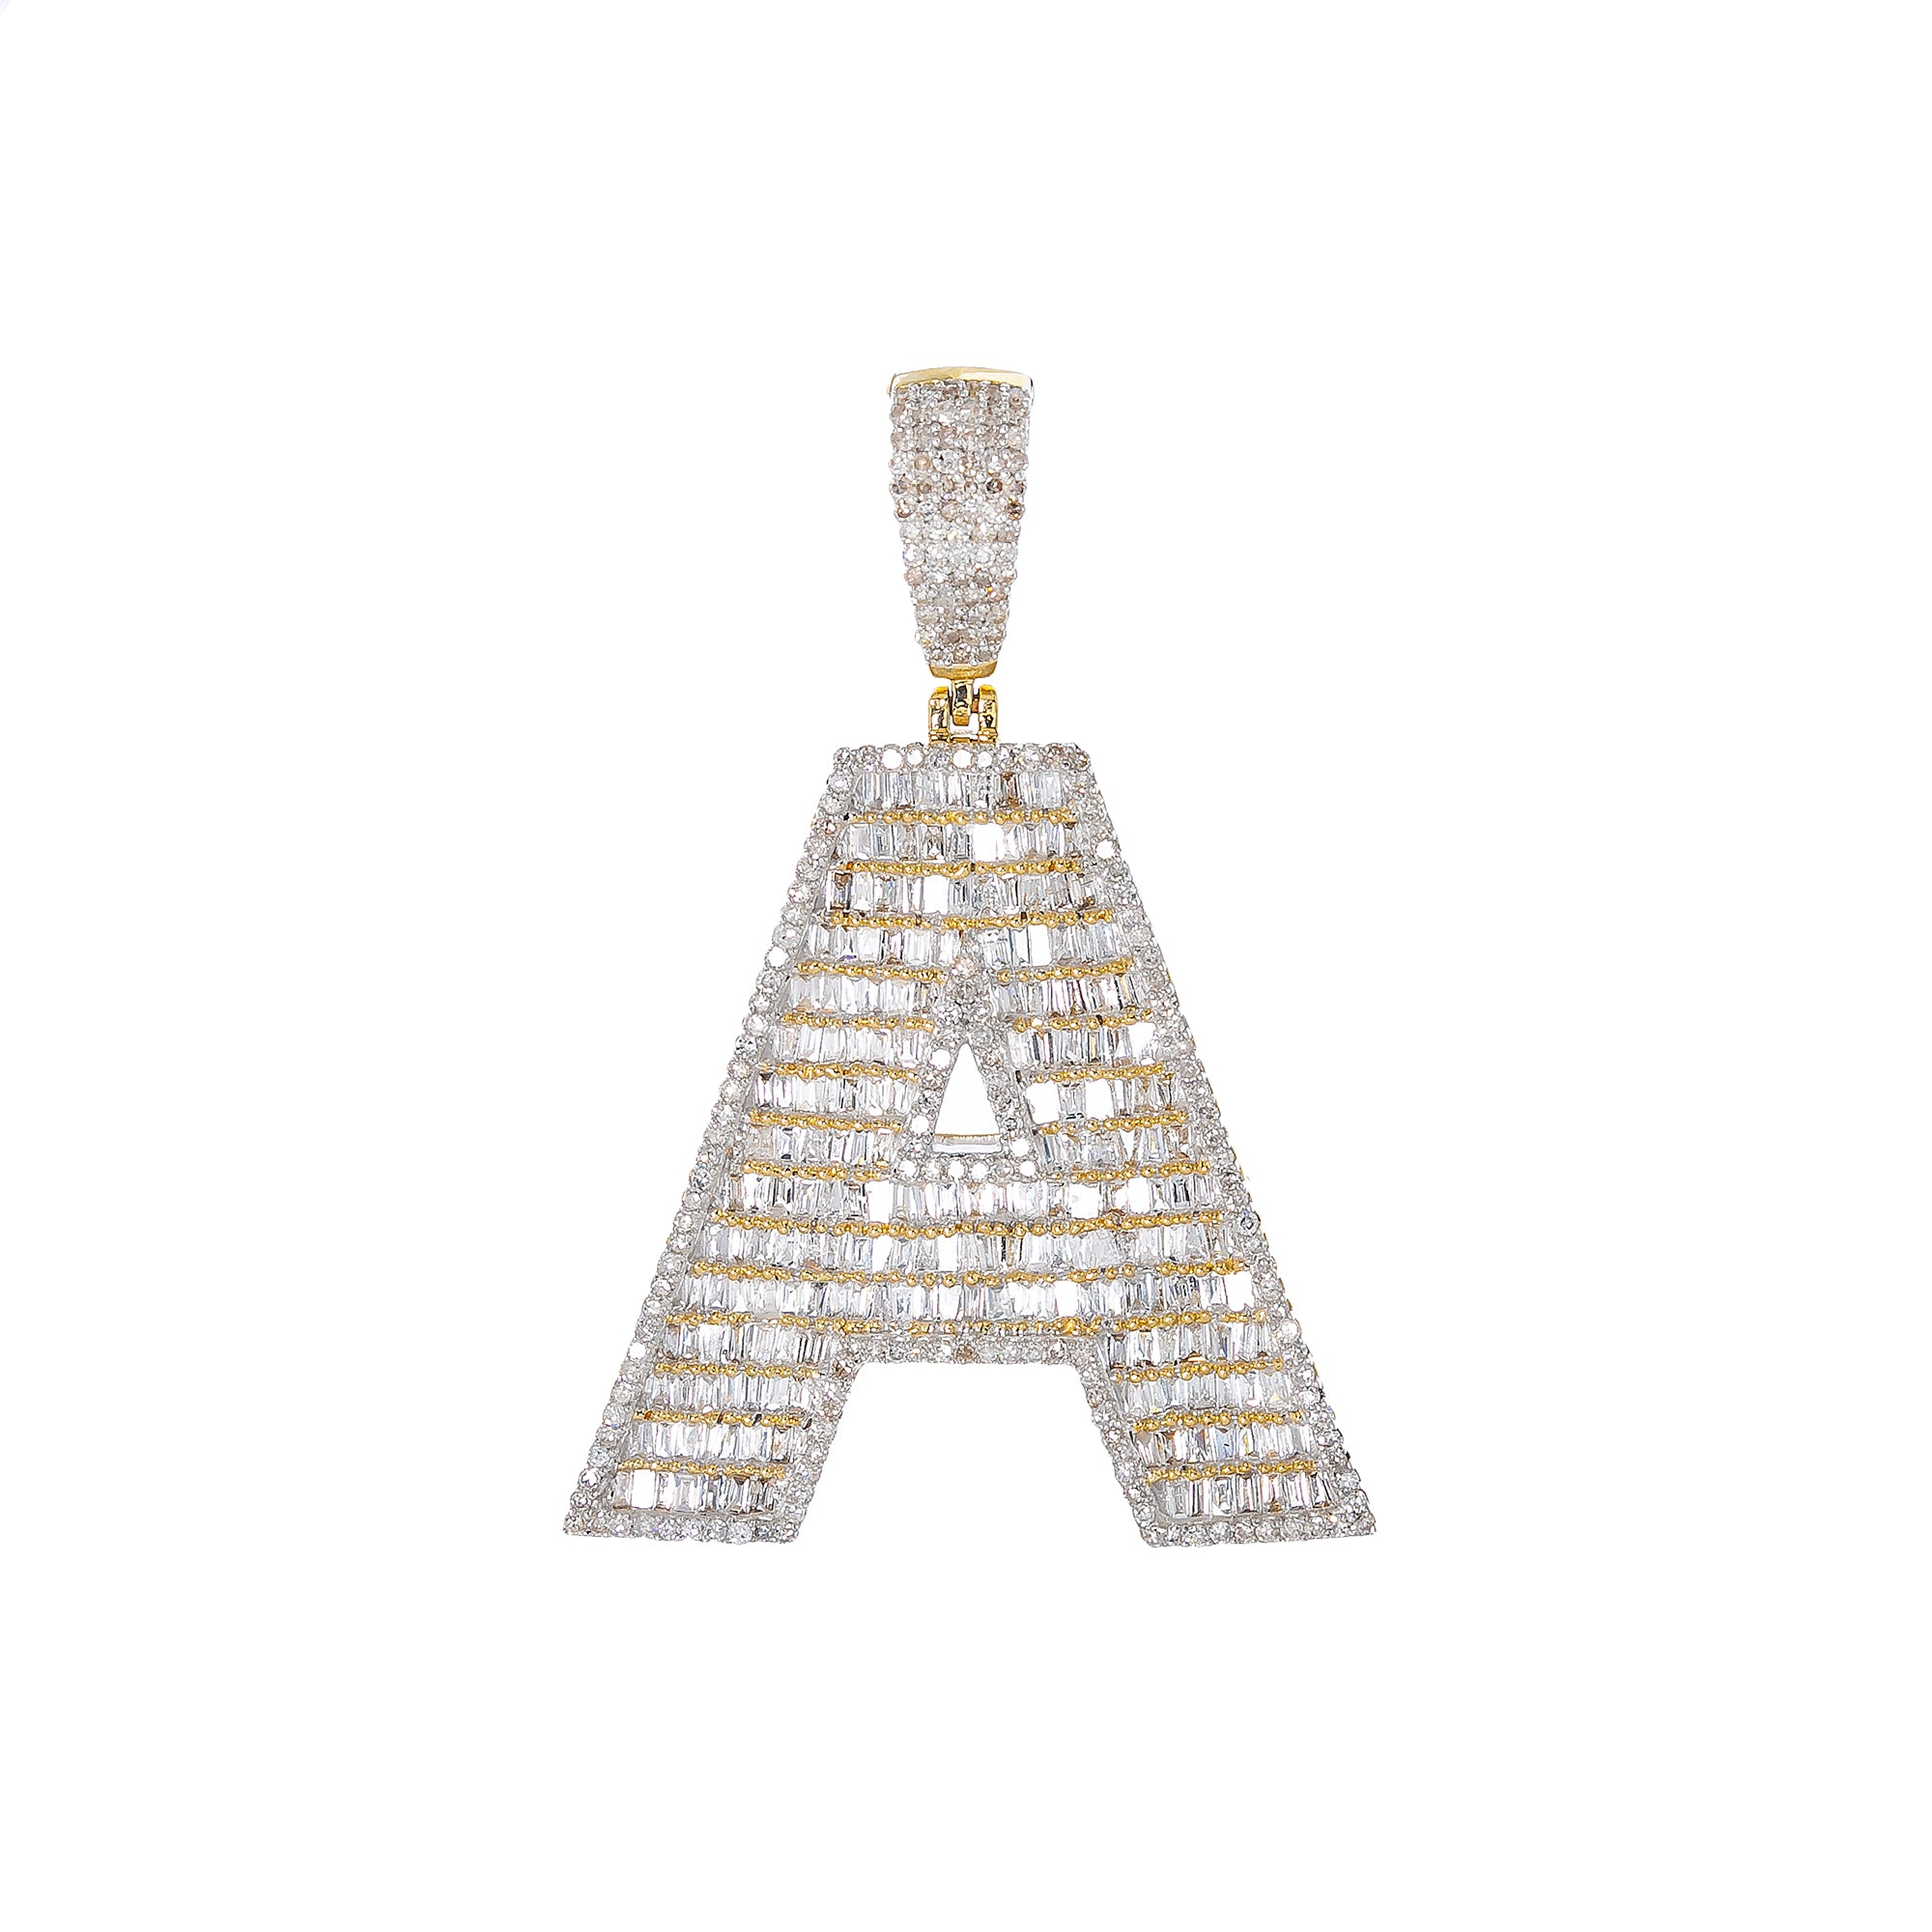 14K YELLOW GOLD UNISEX LETTER A WITH 2.01 CT DIAMONDS